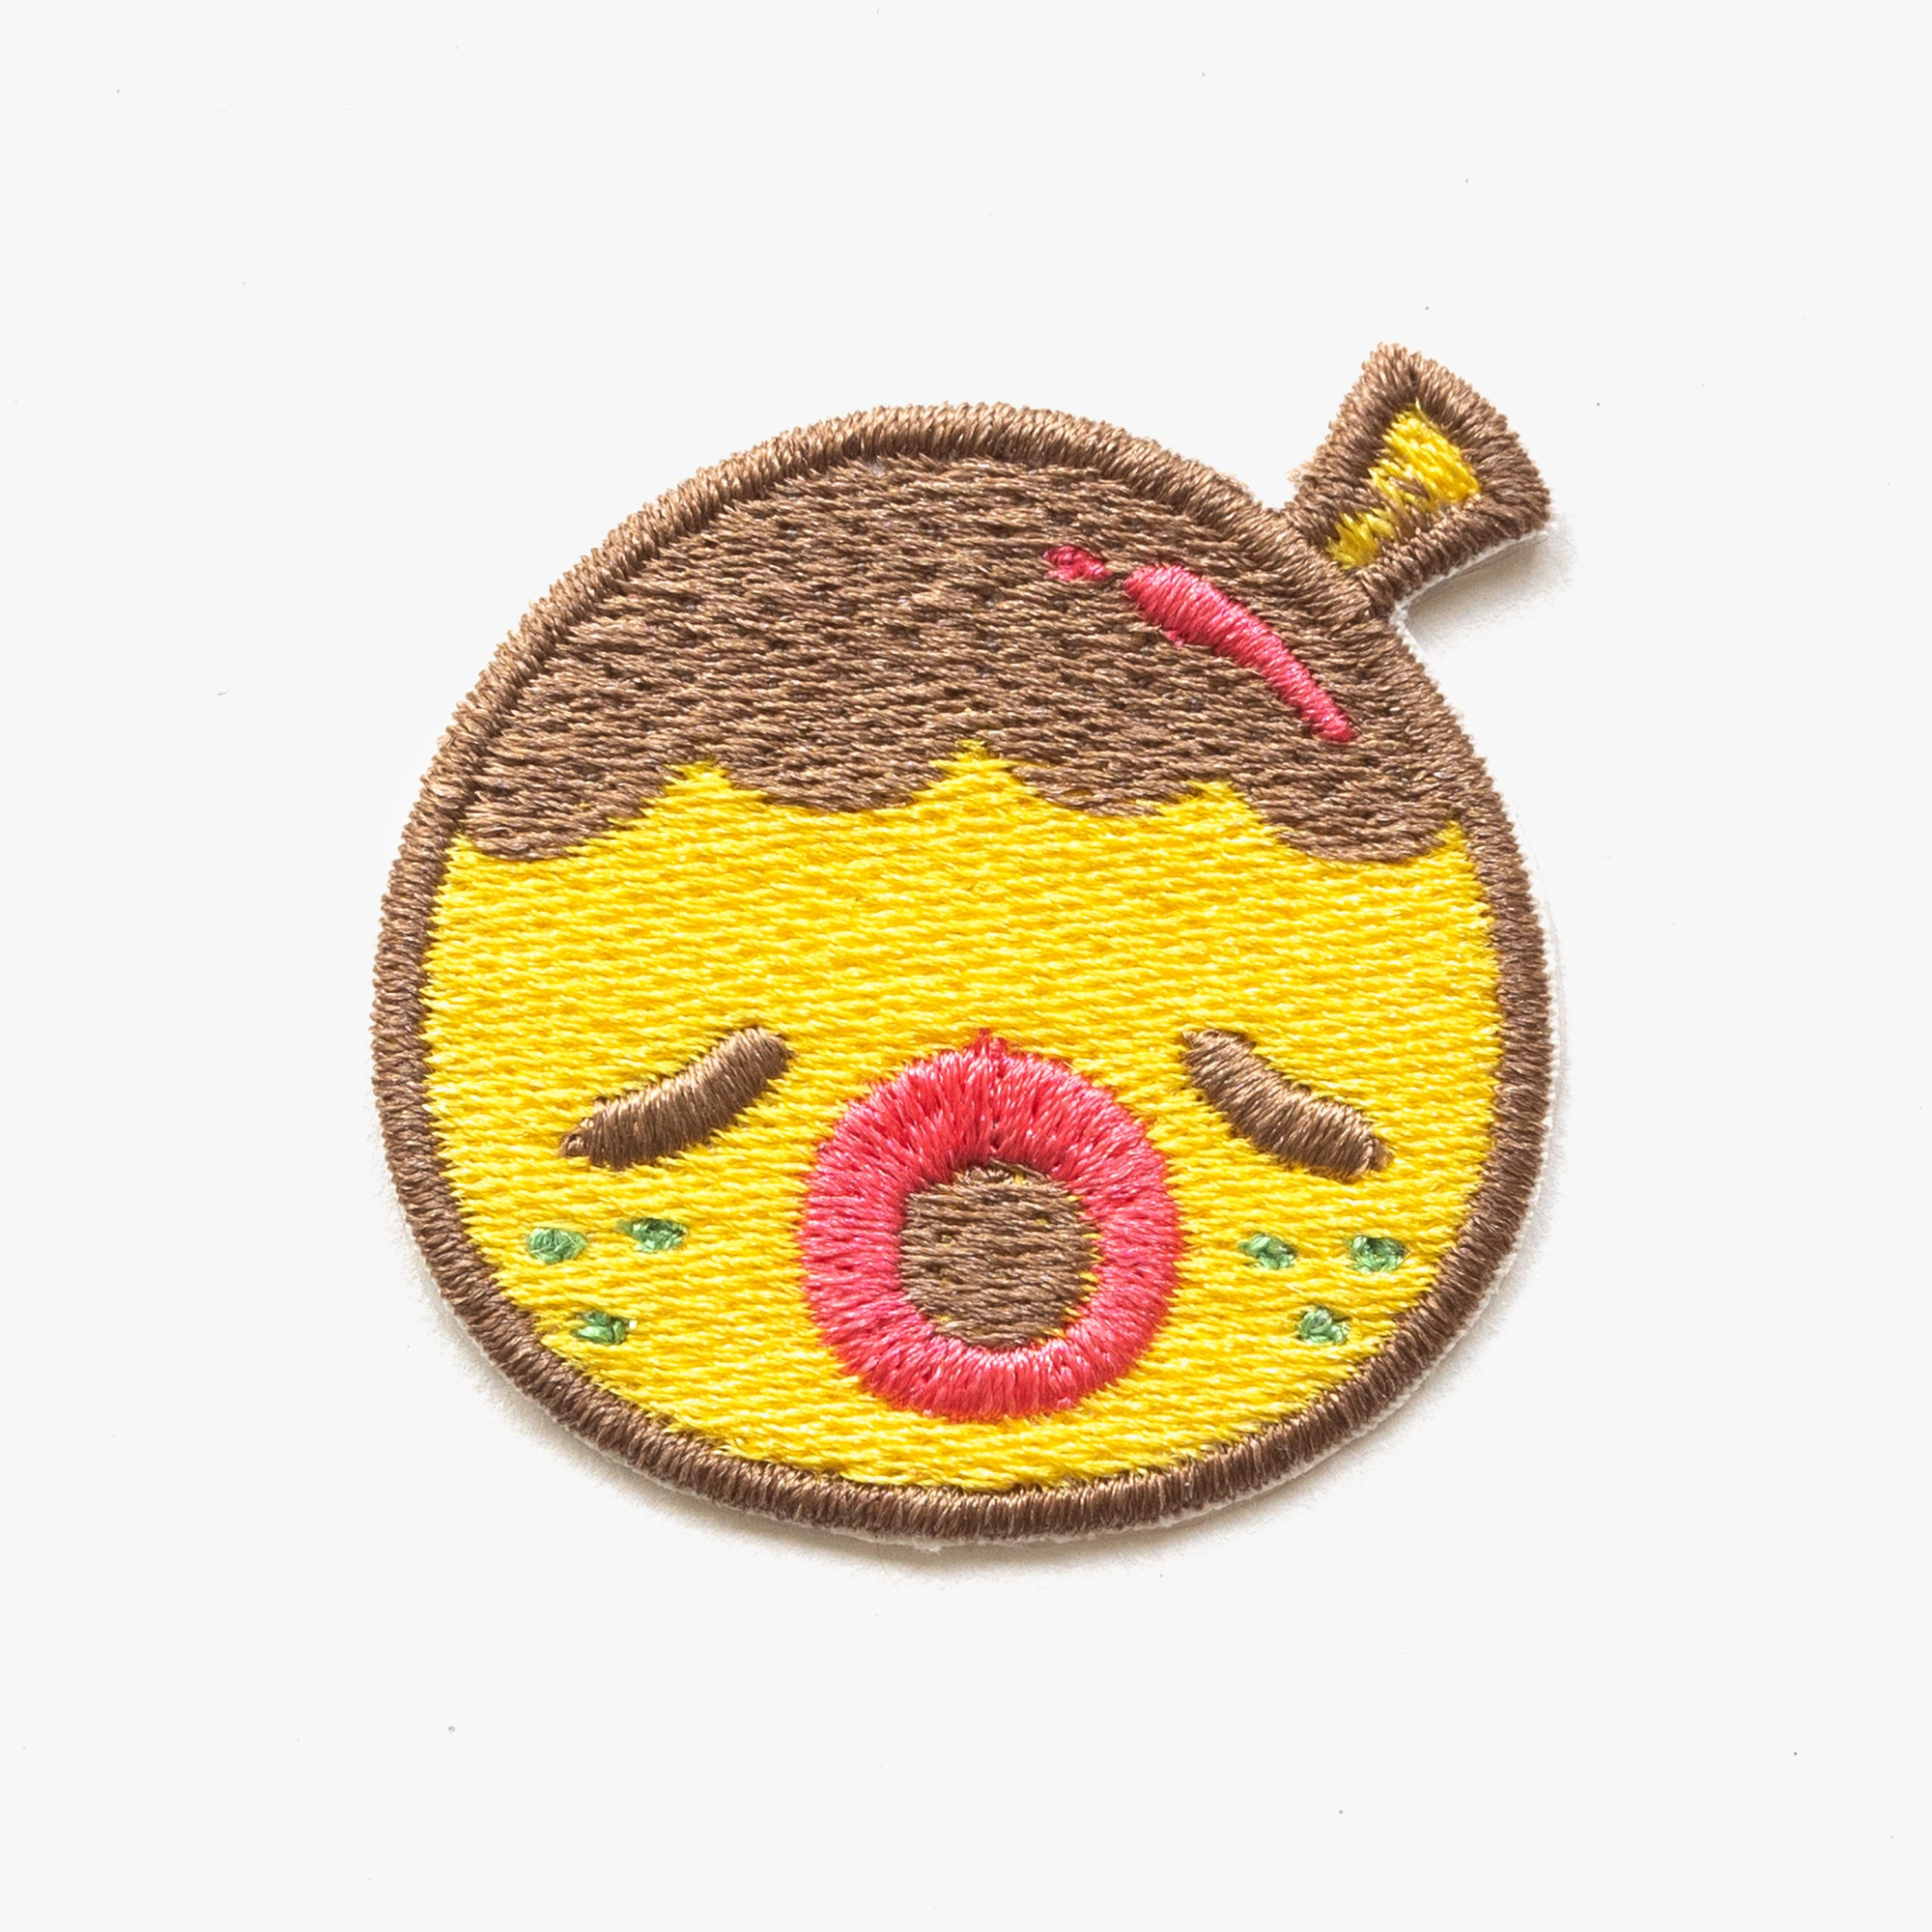 Zucker Animal Crossing Embroidered Patch (Homemade)